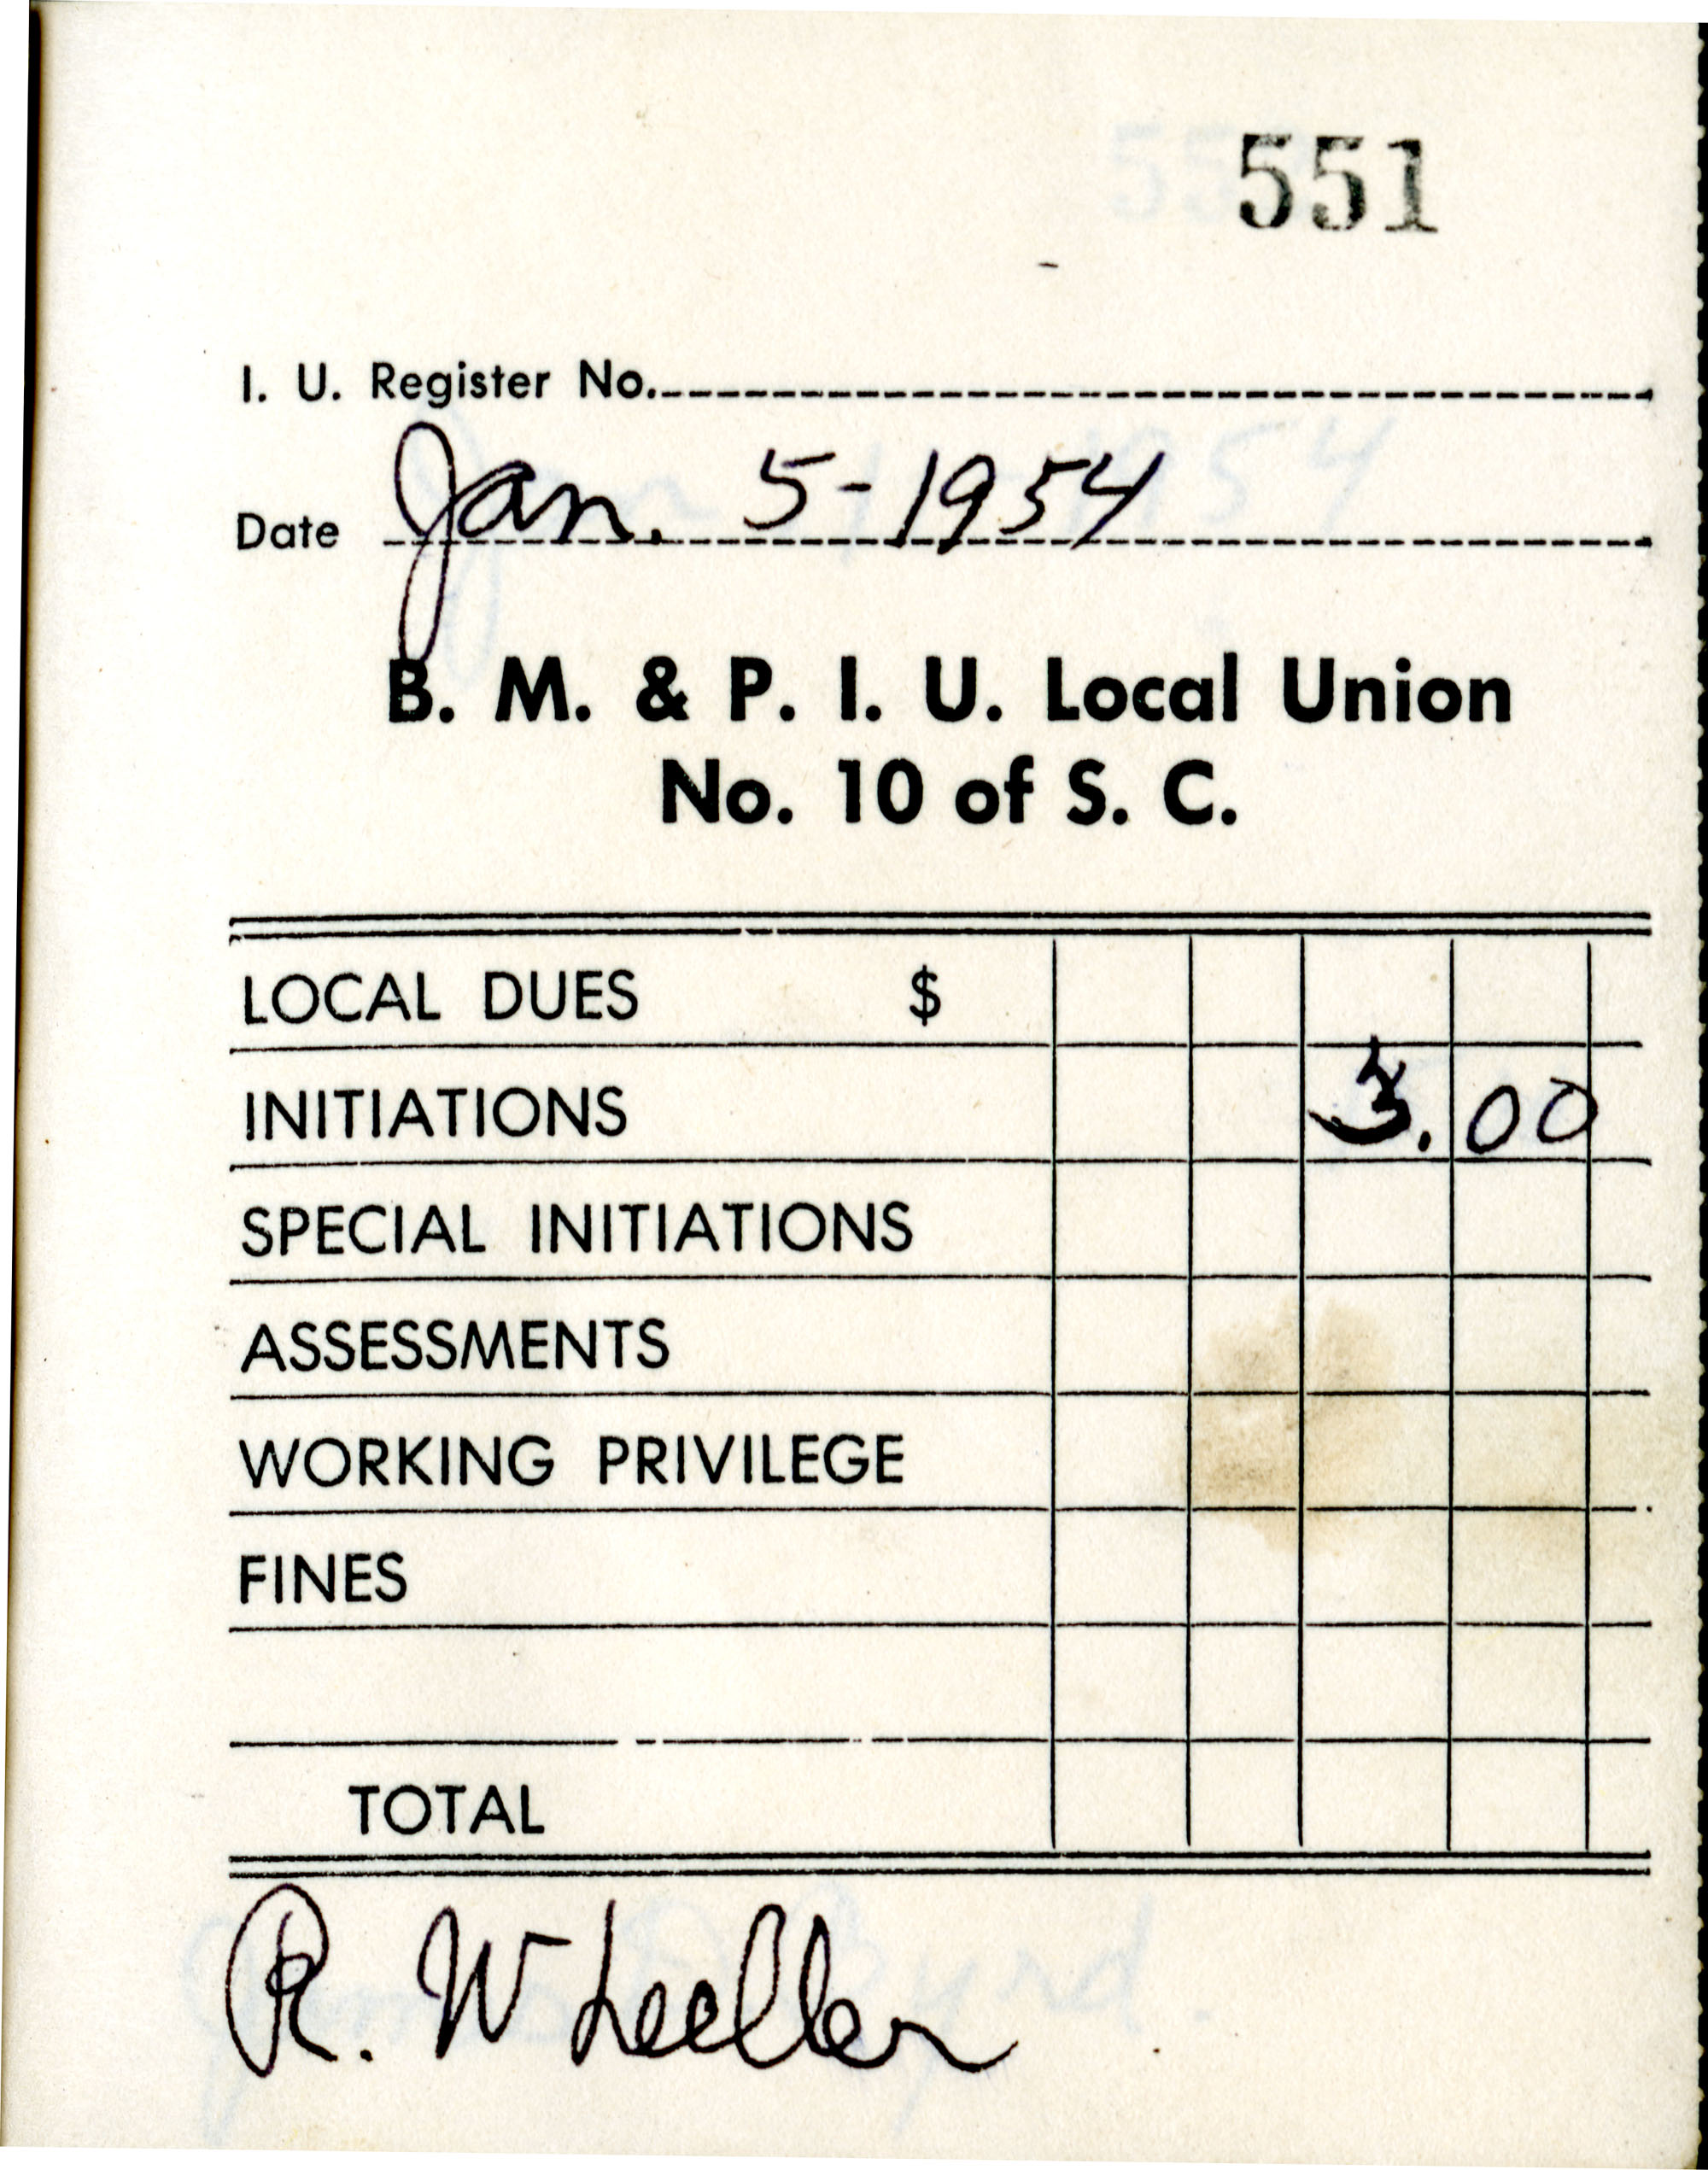 Receipt Book 6, Page 2